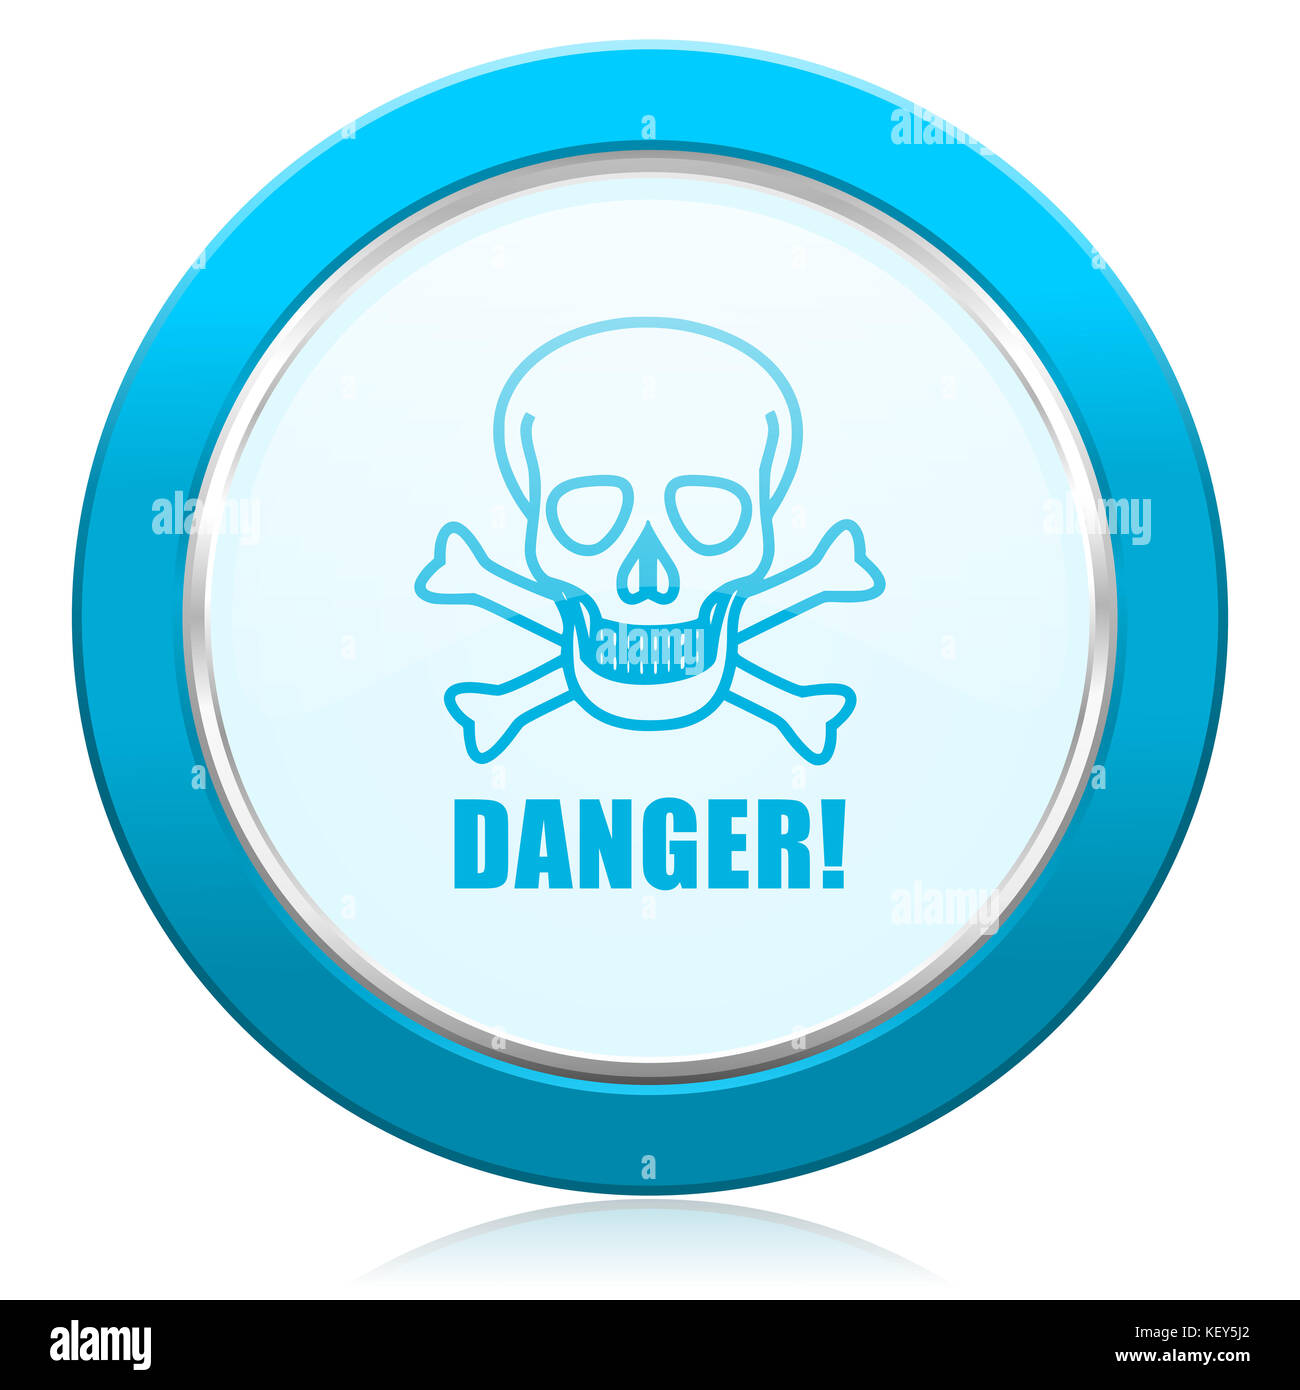 Danger skull blue chrome silver metallic border web icon. Round button for internet and mobile phone application - Stock Image